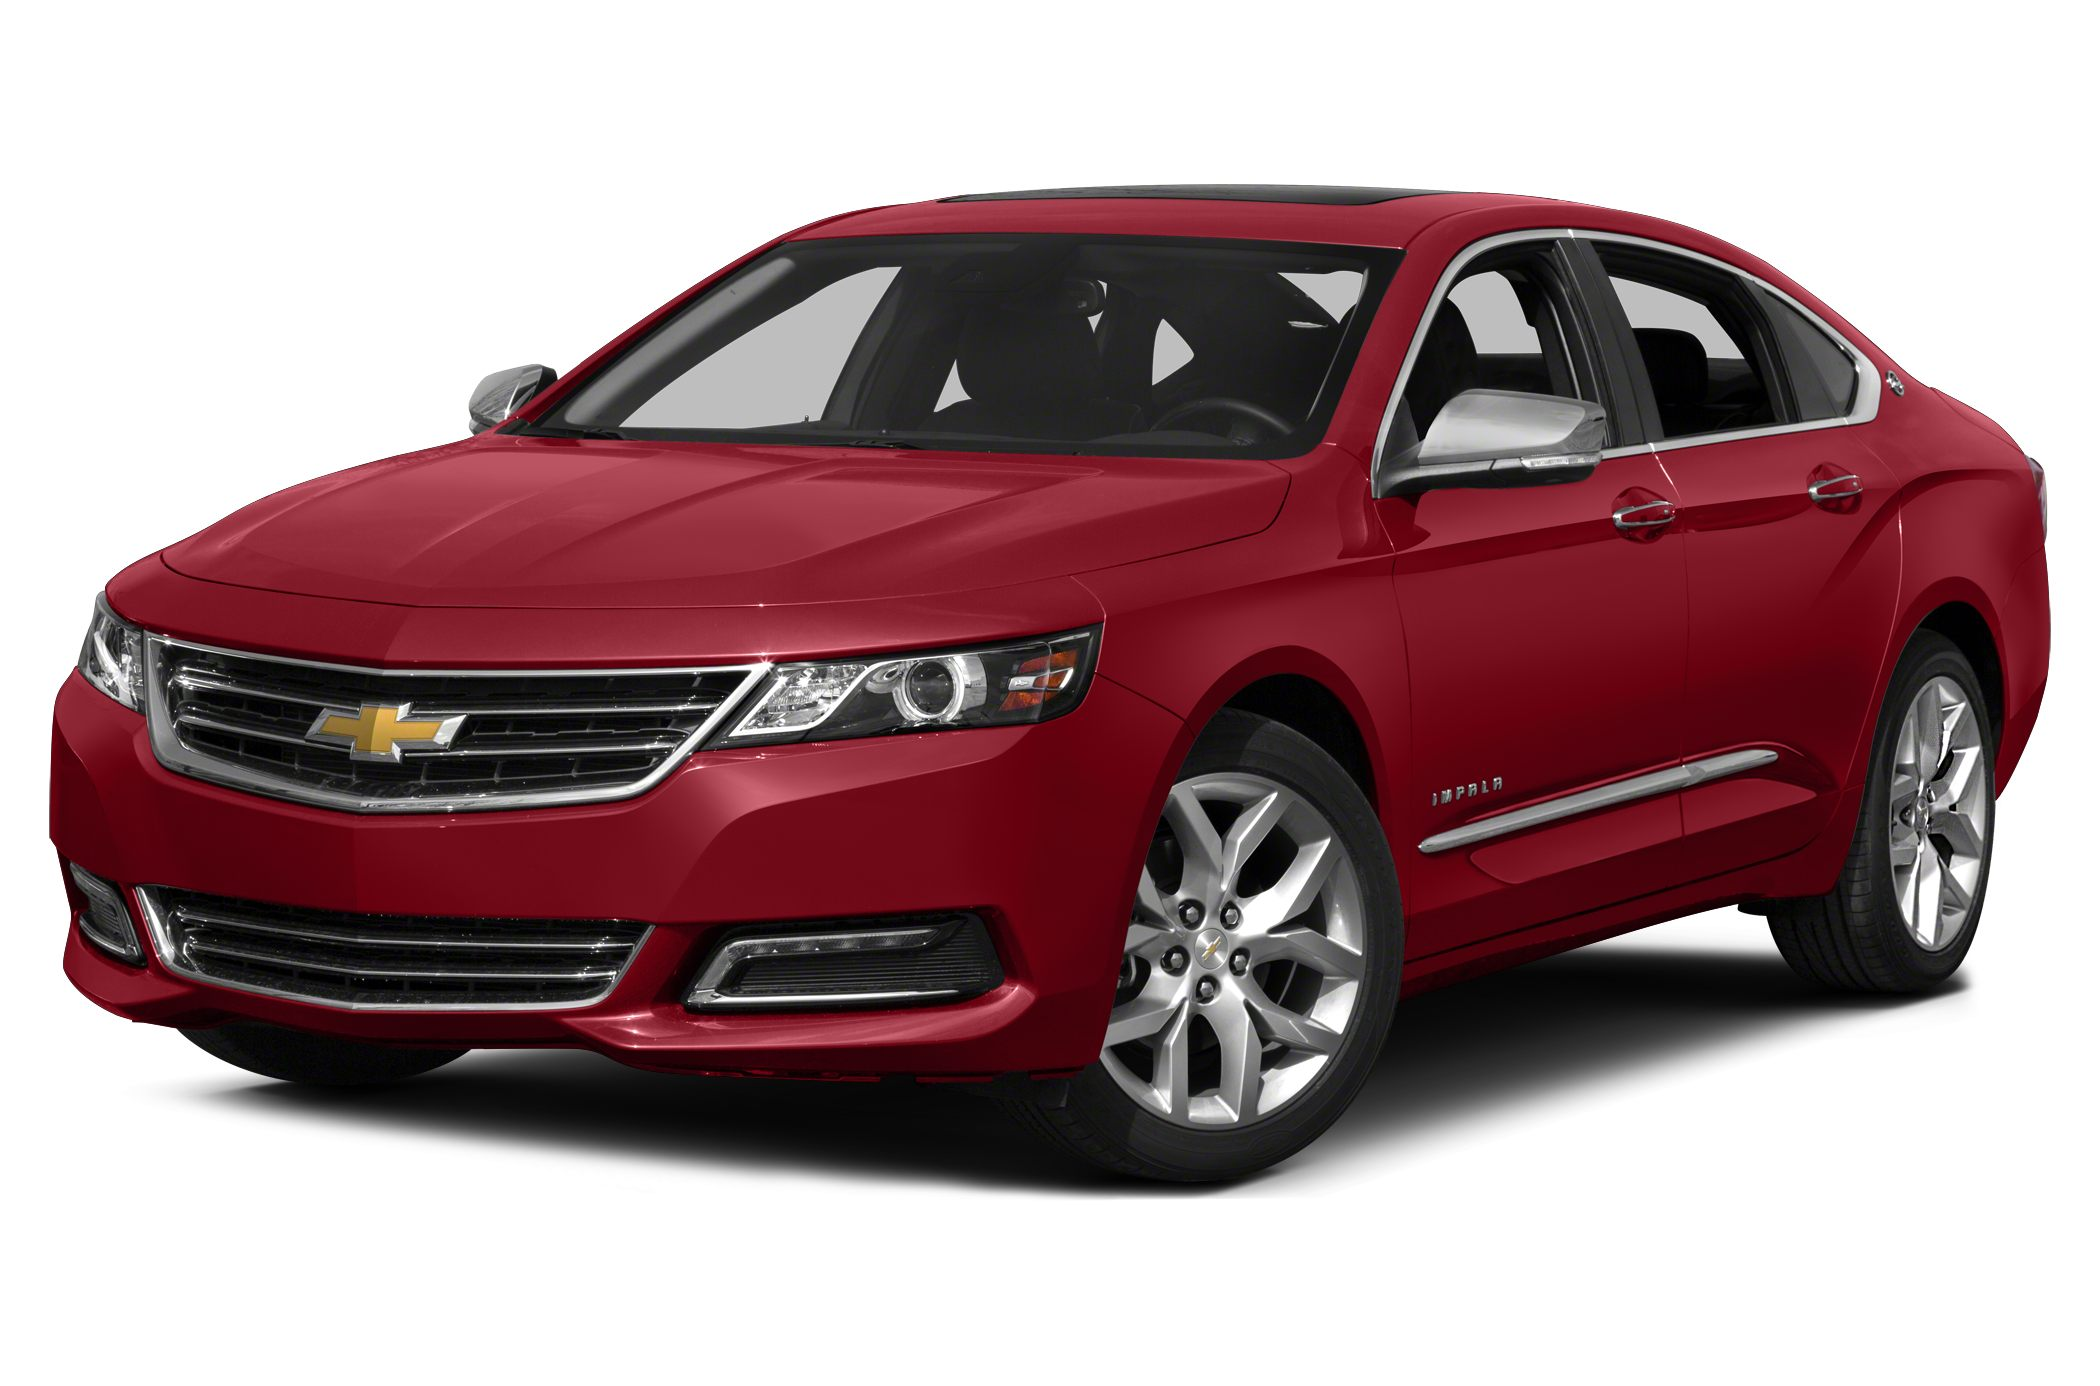 2015 Chevrolet Impala LS Sedan for sale in Butte for $26,054 with 12 miles.